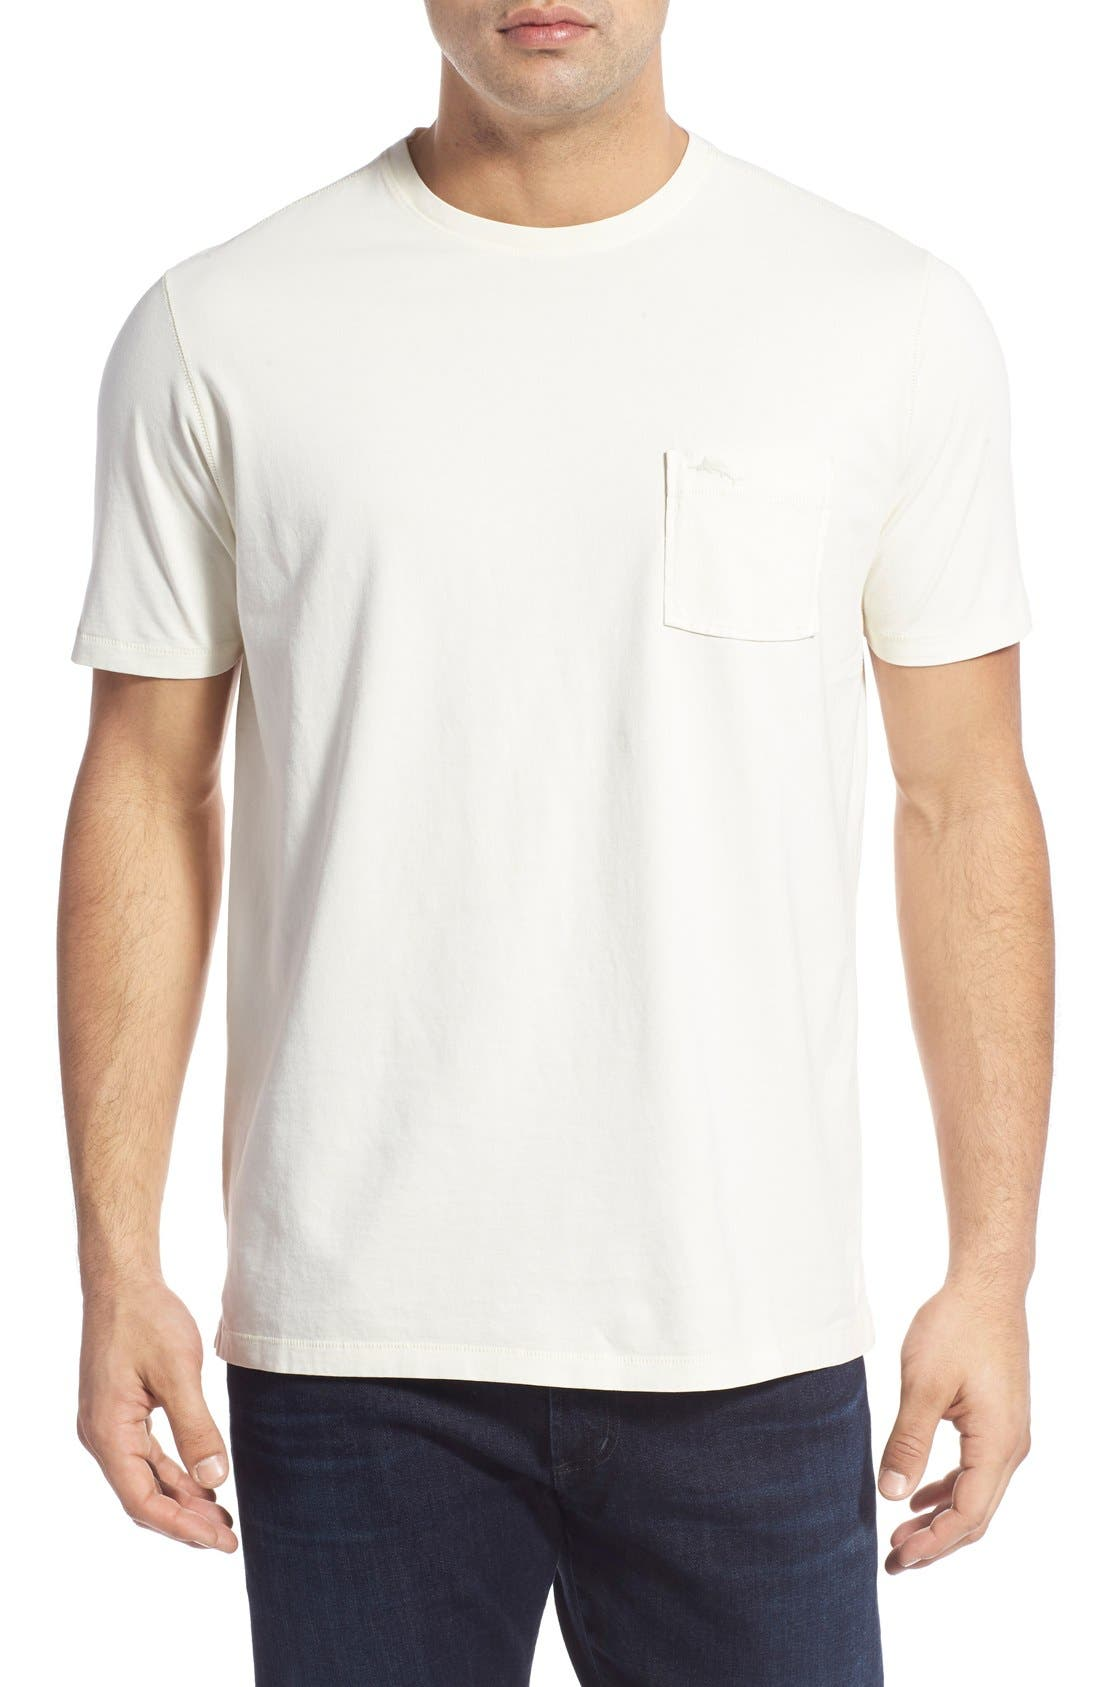 'New Bahama Reef' Island Modern Fit Pima Cotton Pocket T-Shirt,                             Main thumbnail 1, color,                             100